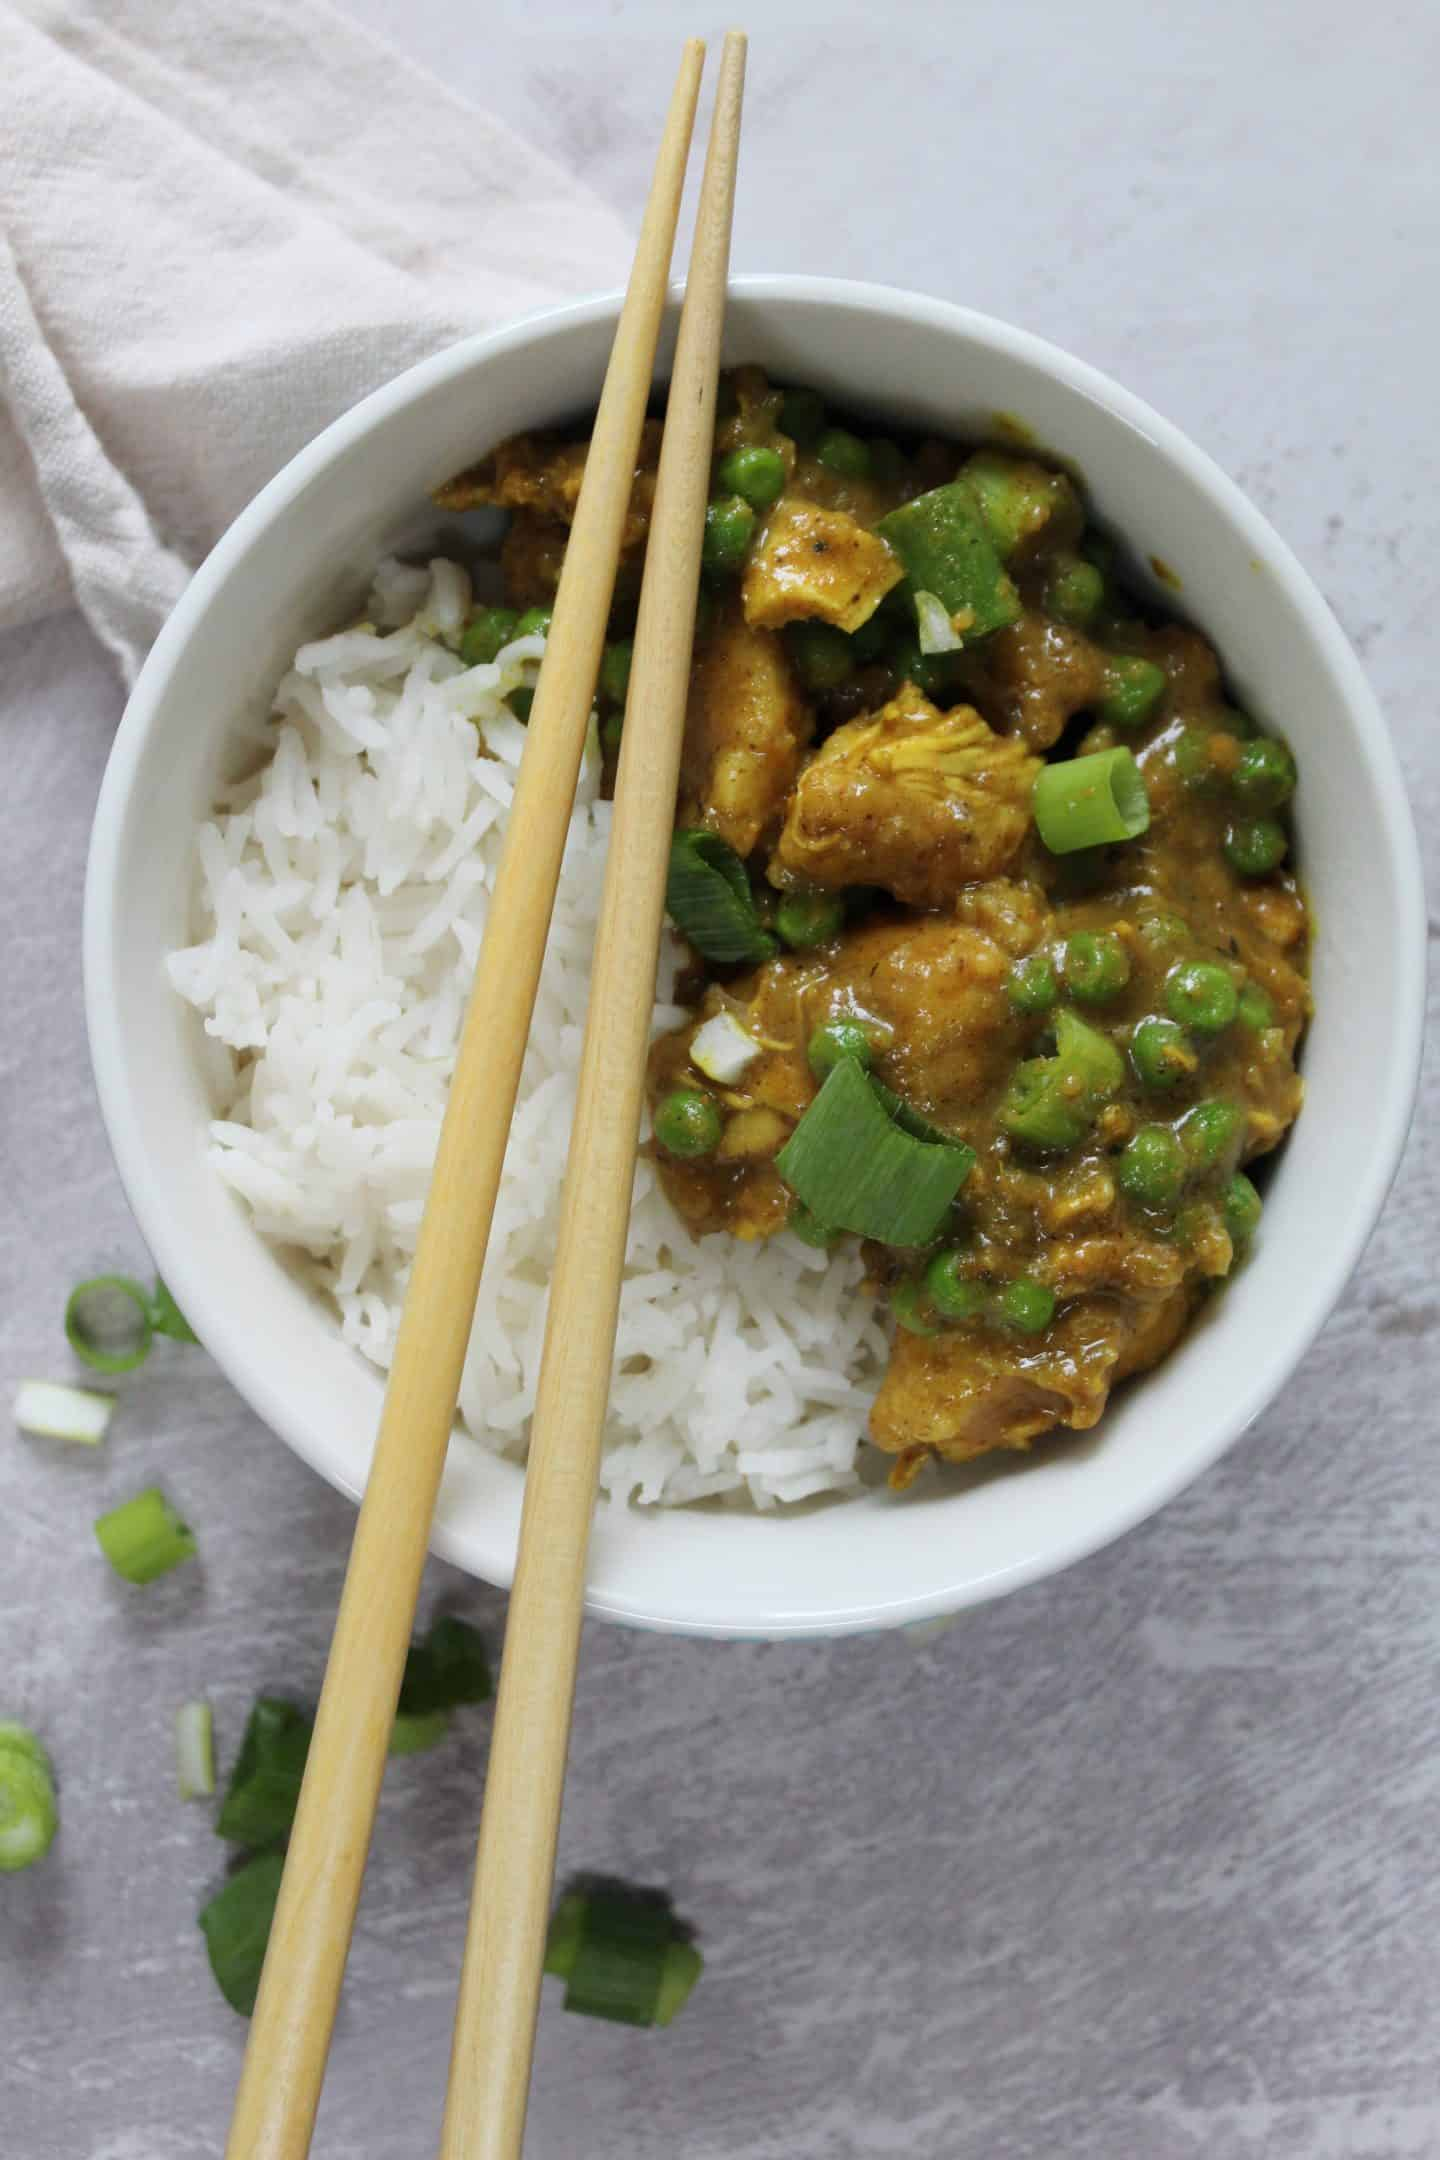 GLUTEN FREE CHINESE CURRY RECIPE